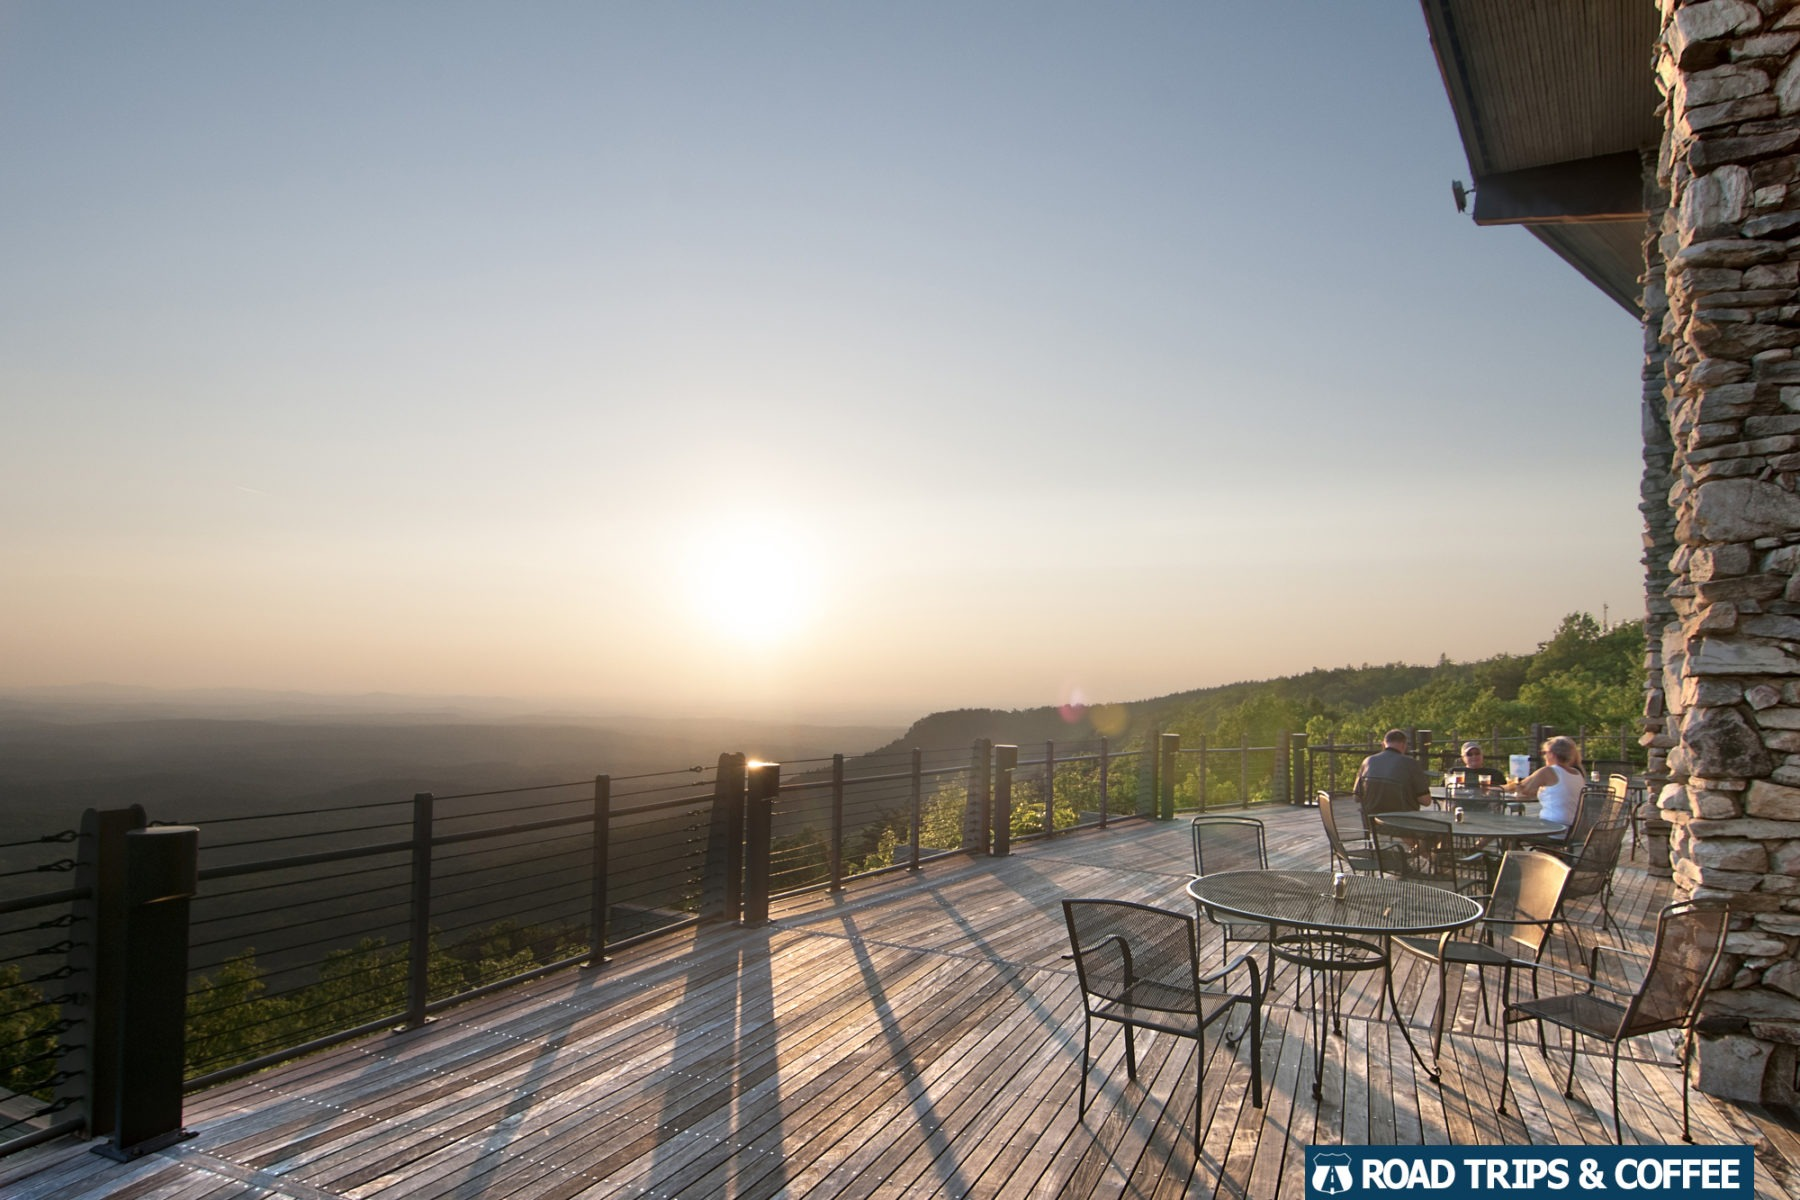 Sunset across a wide wooden deck at Cheaha State Park in Alabama.